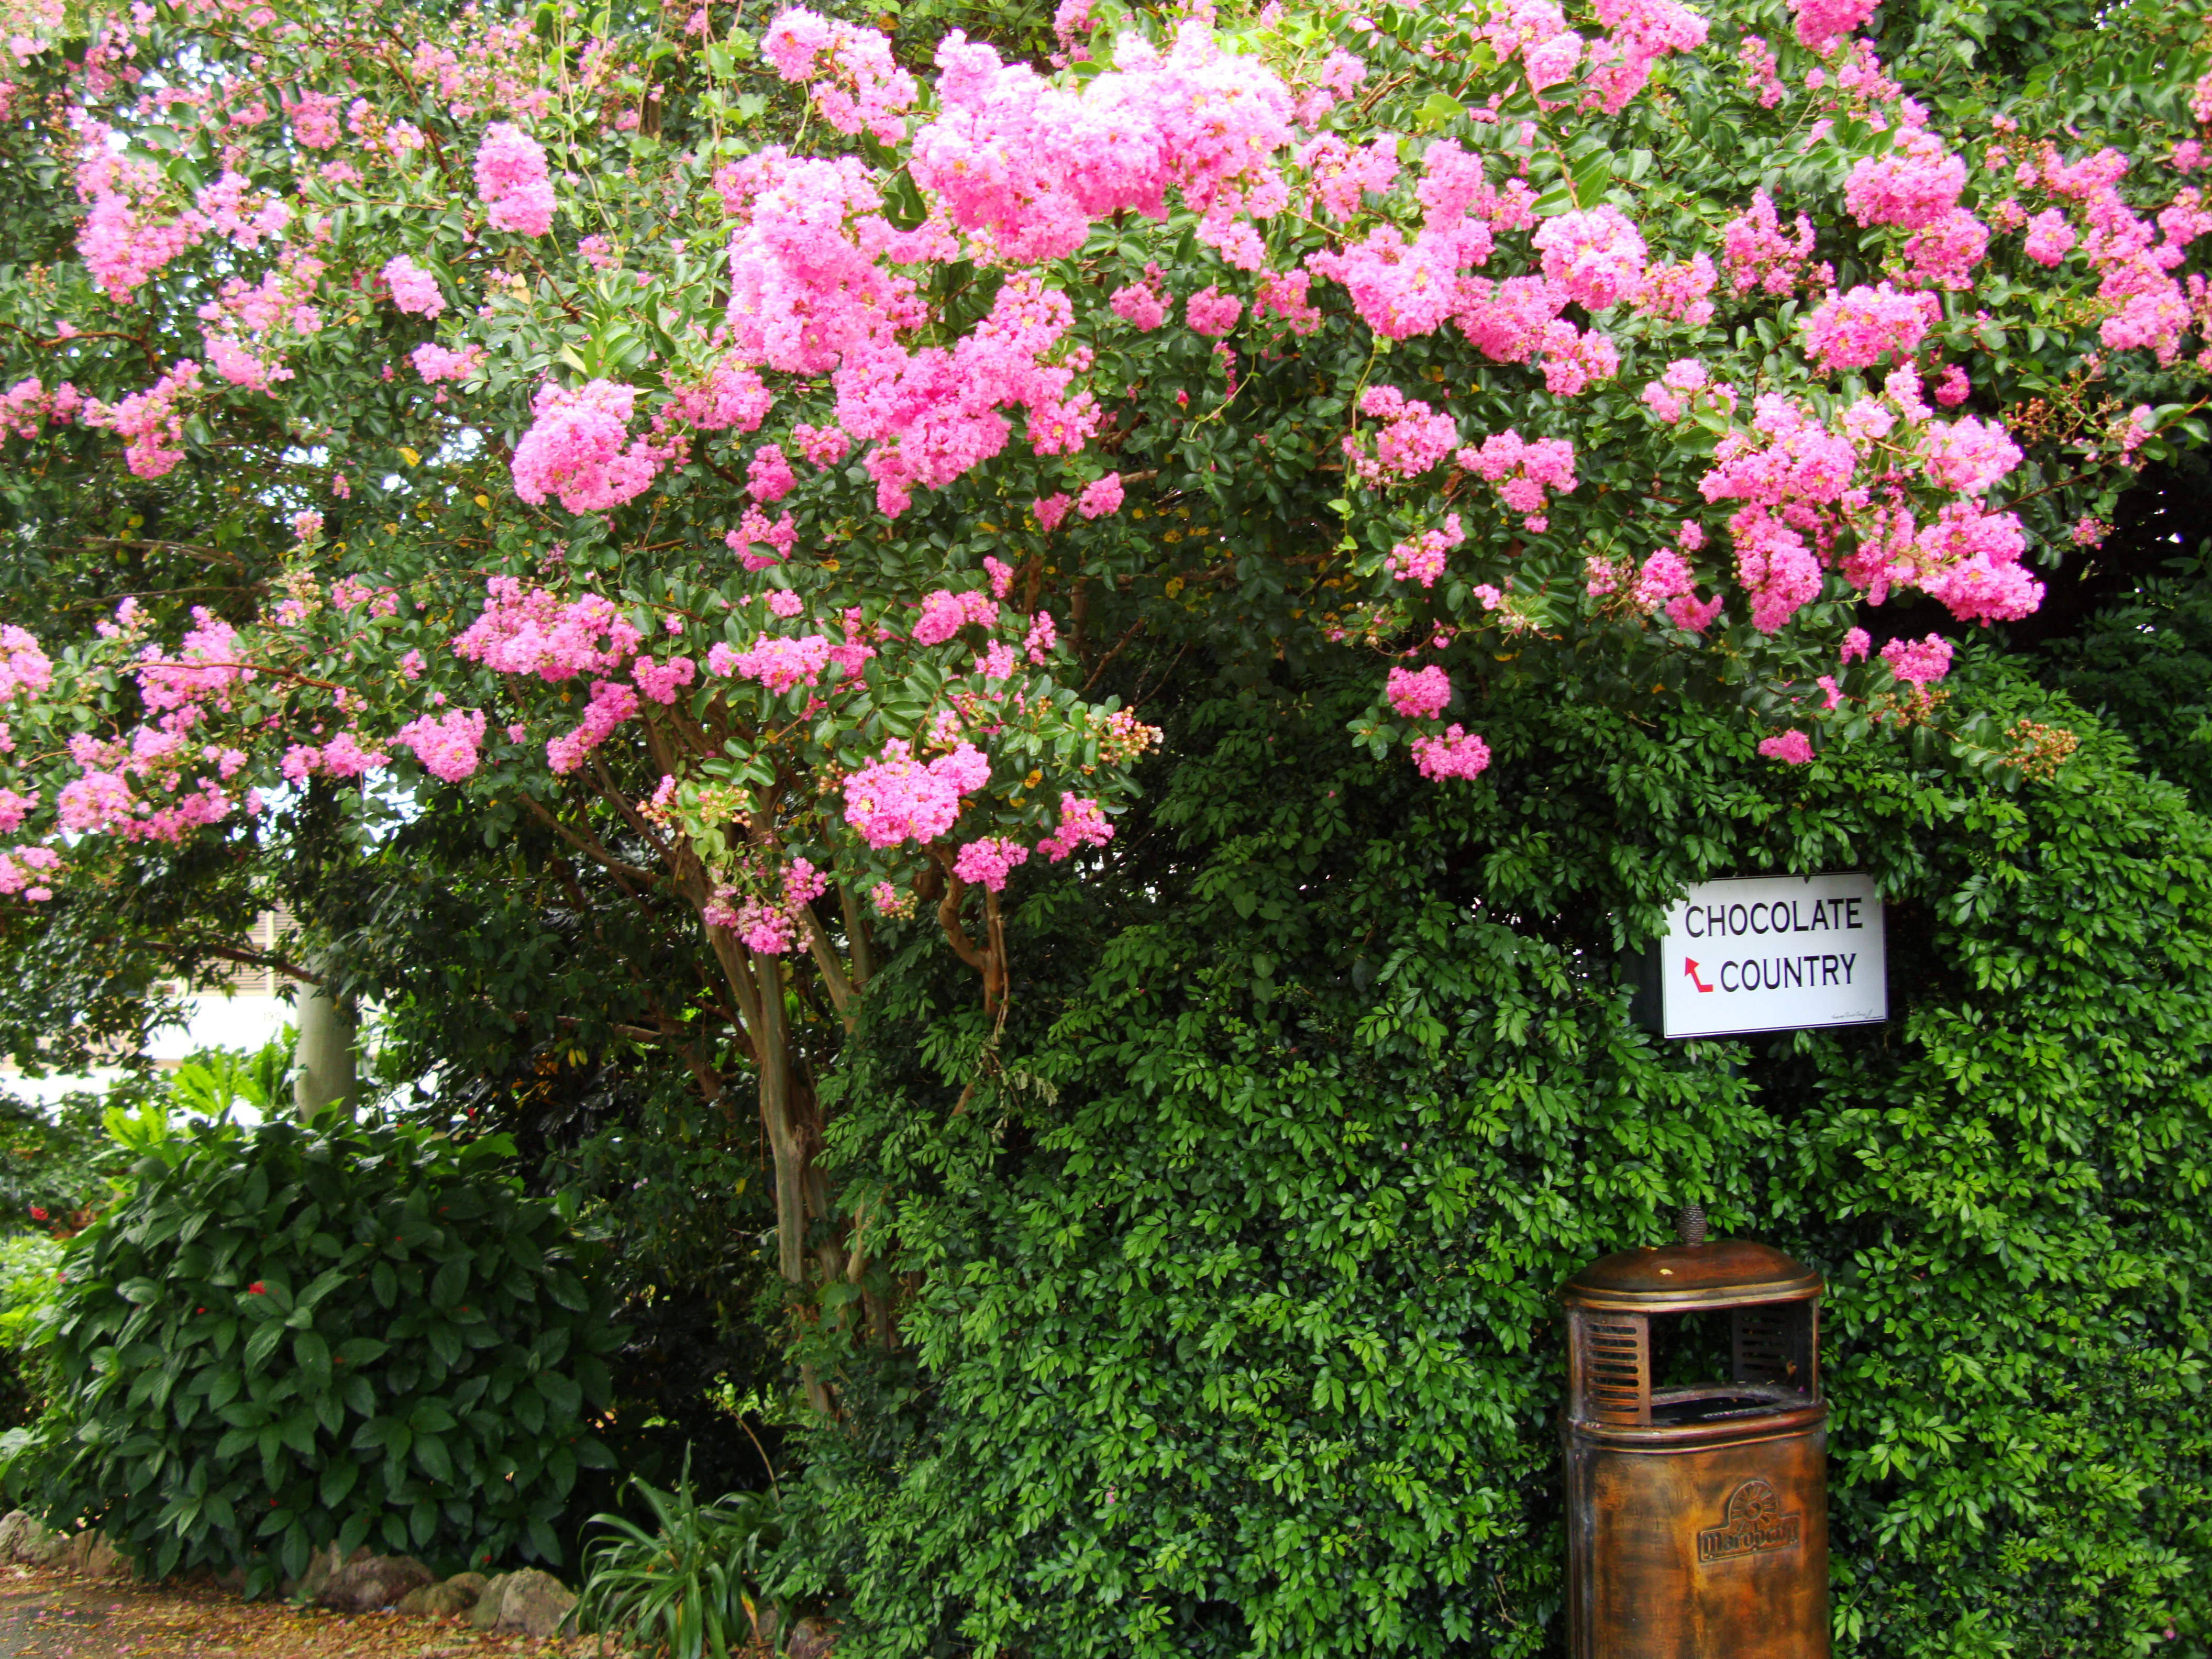 Australia flaxton area flowering bushes 01 images frompo - Blooming shrubs ...